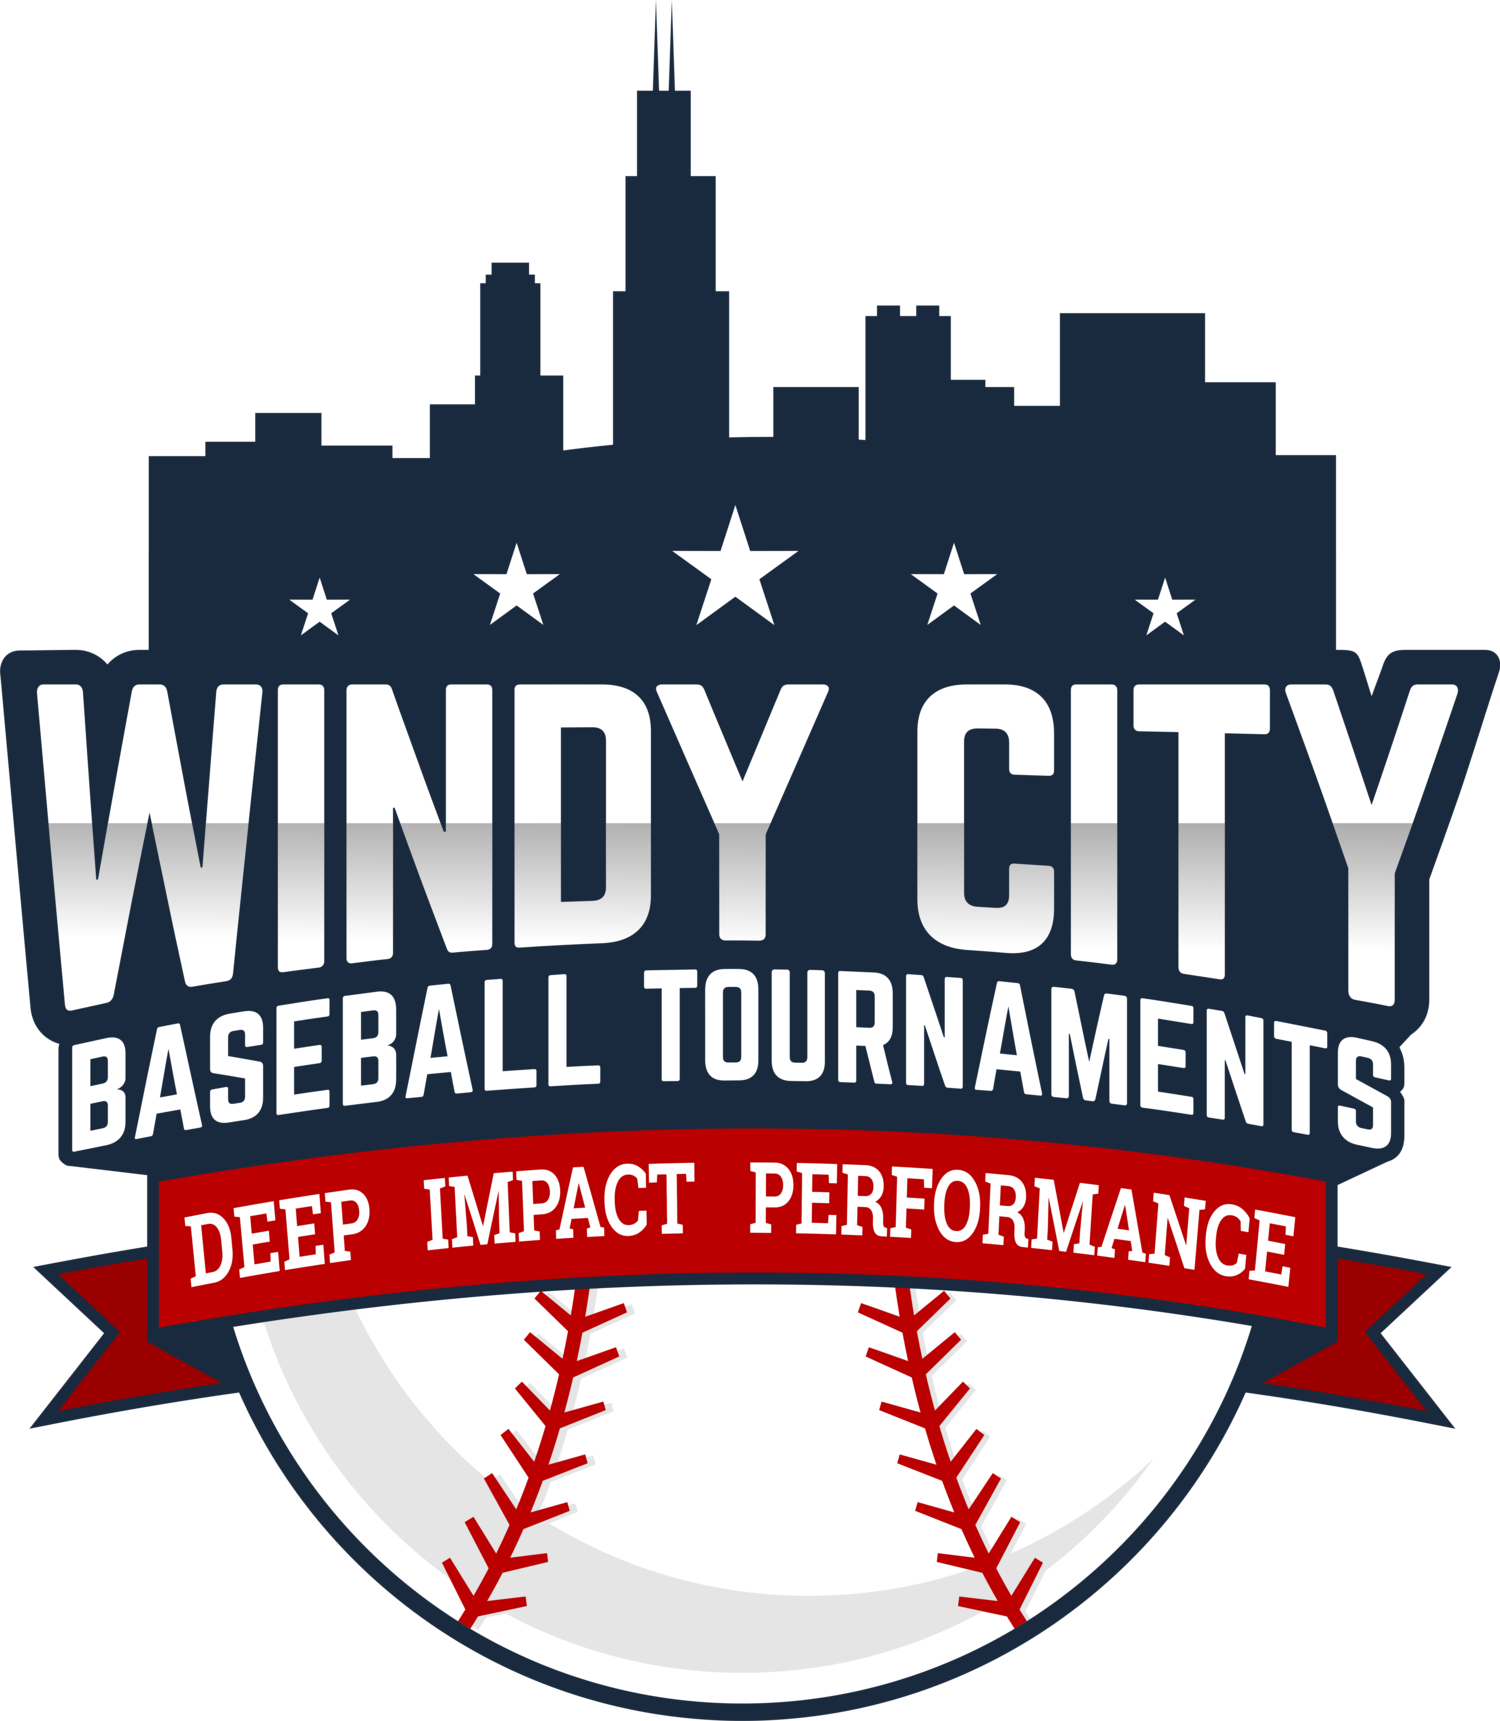 Windy City Baseball Tournaments